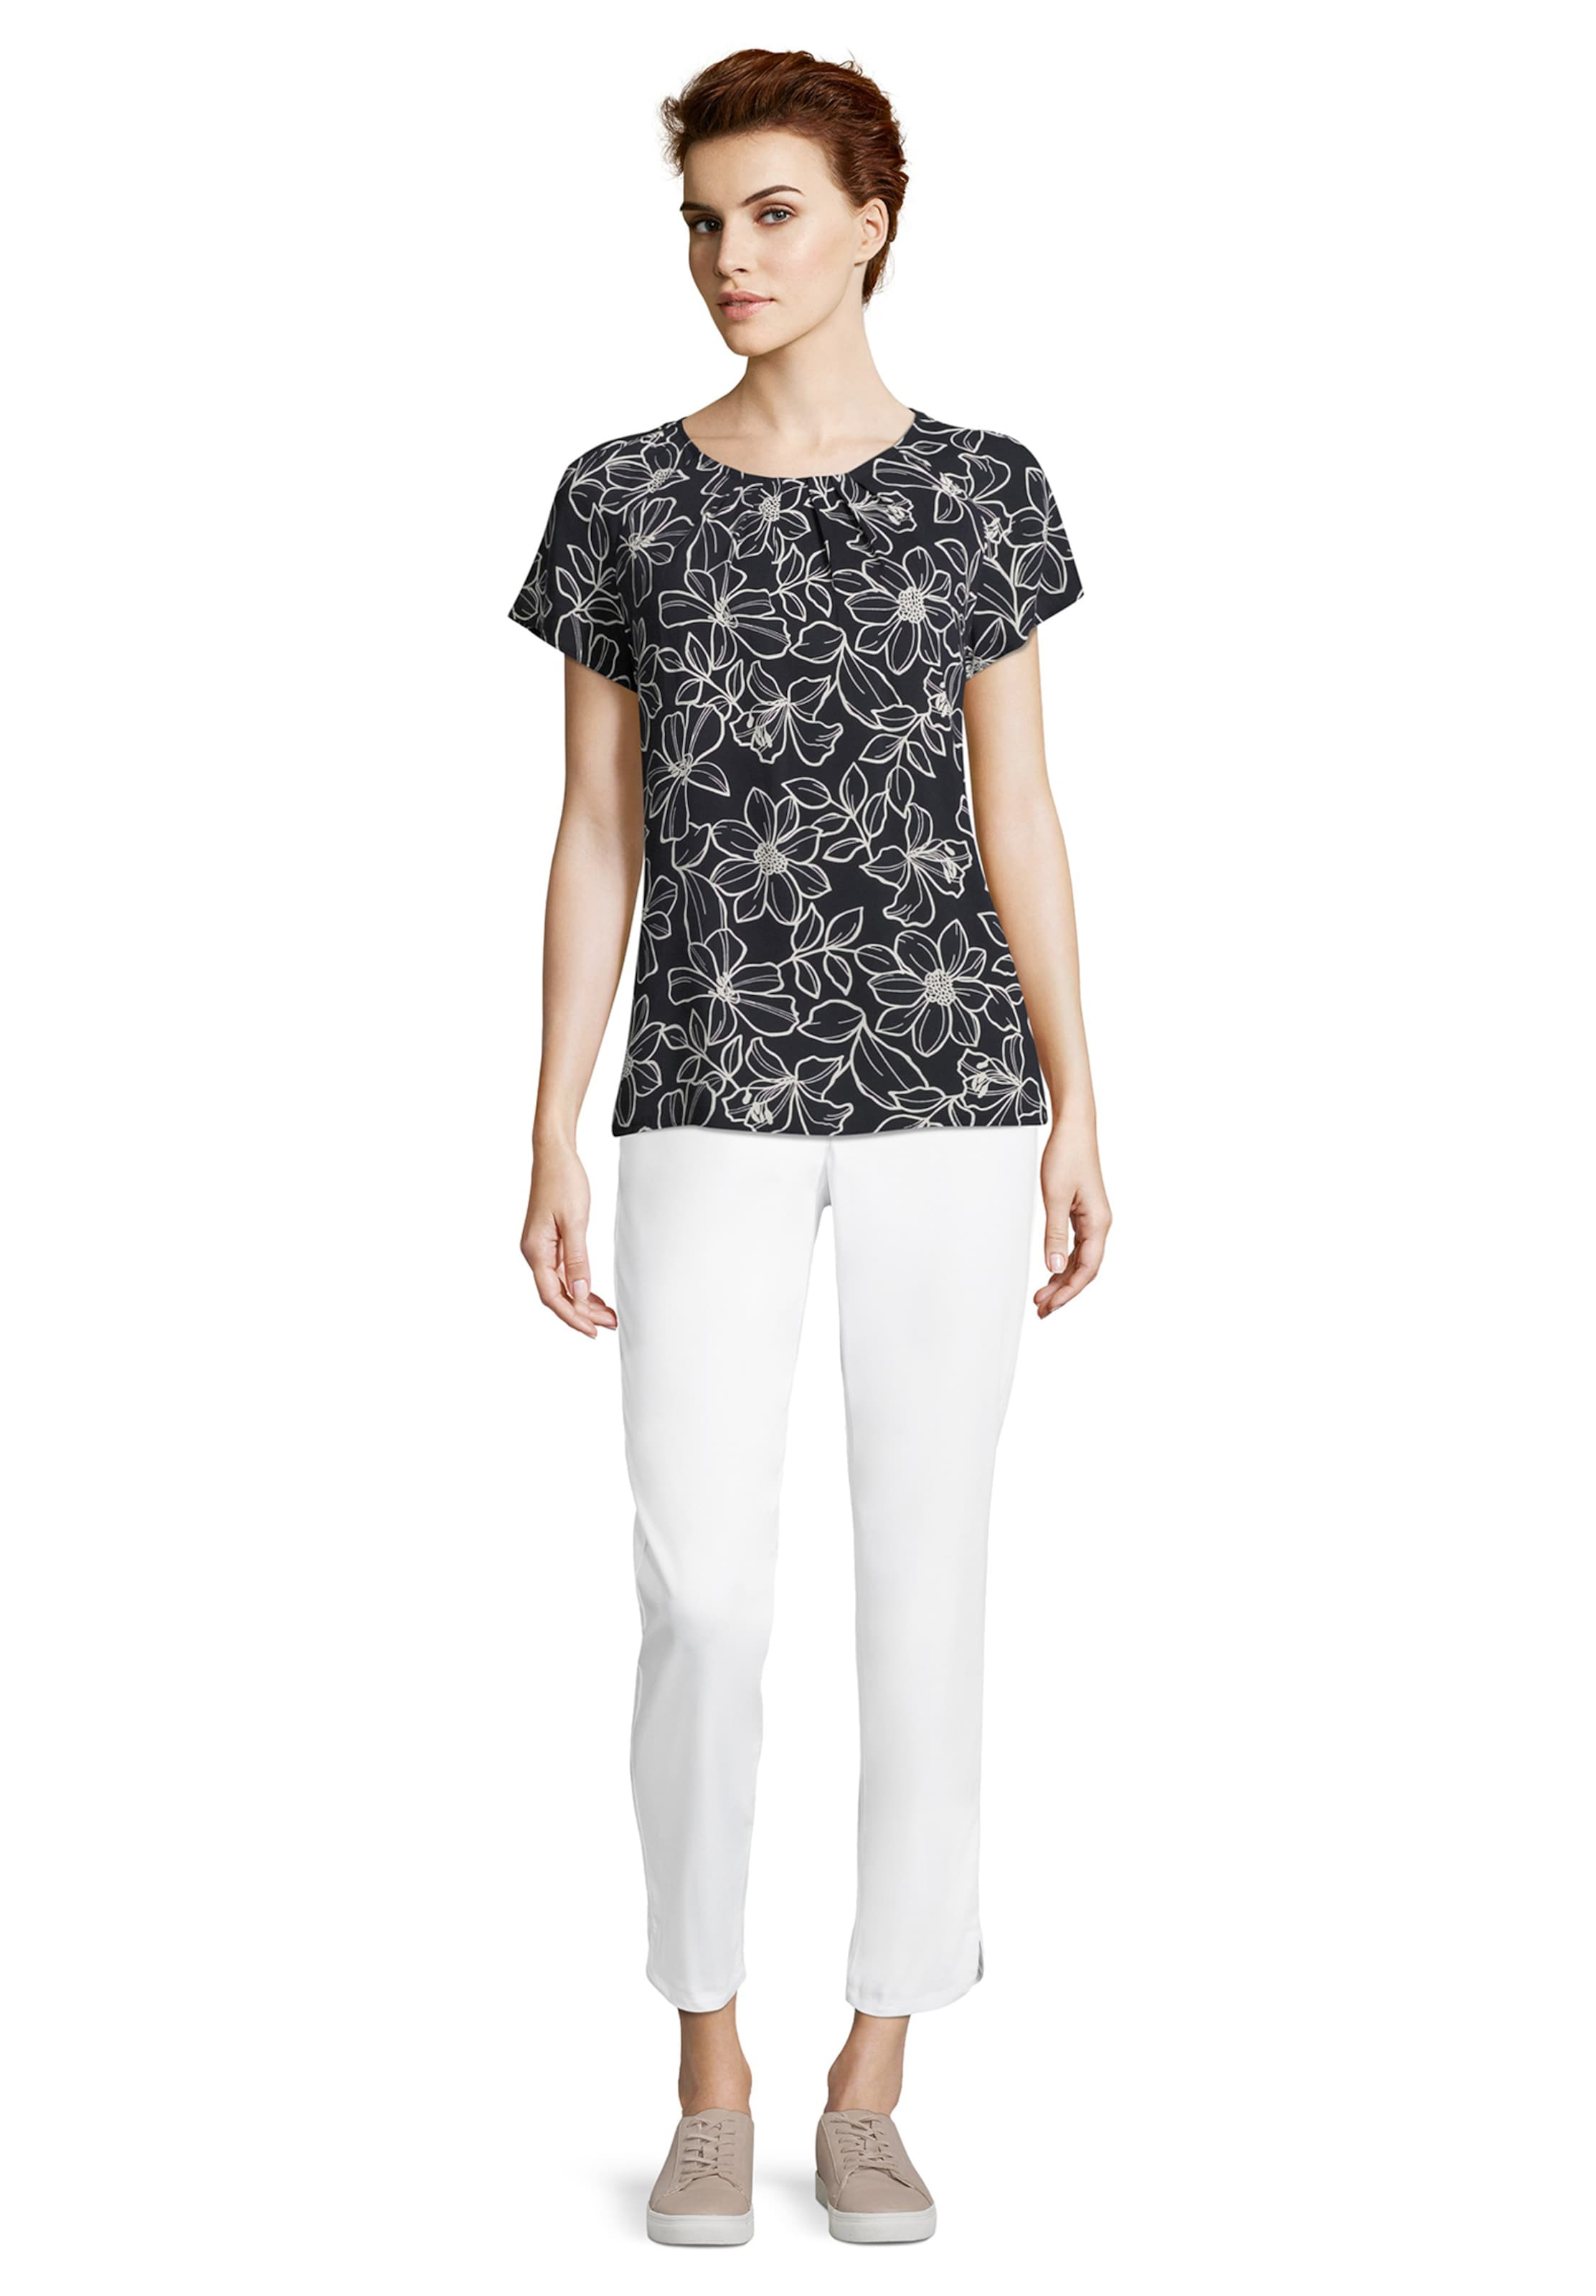 Betty Barclay Barclay Bluse Betty In DunkelblauWeiß Bluse In DunkelblauWeiß Barclay Betty c5jAL34qRS